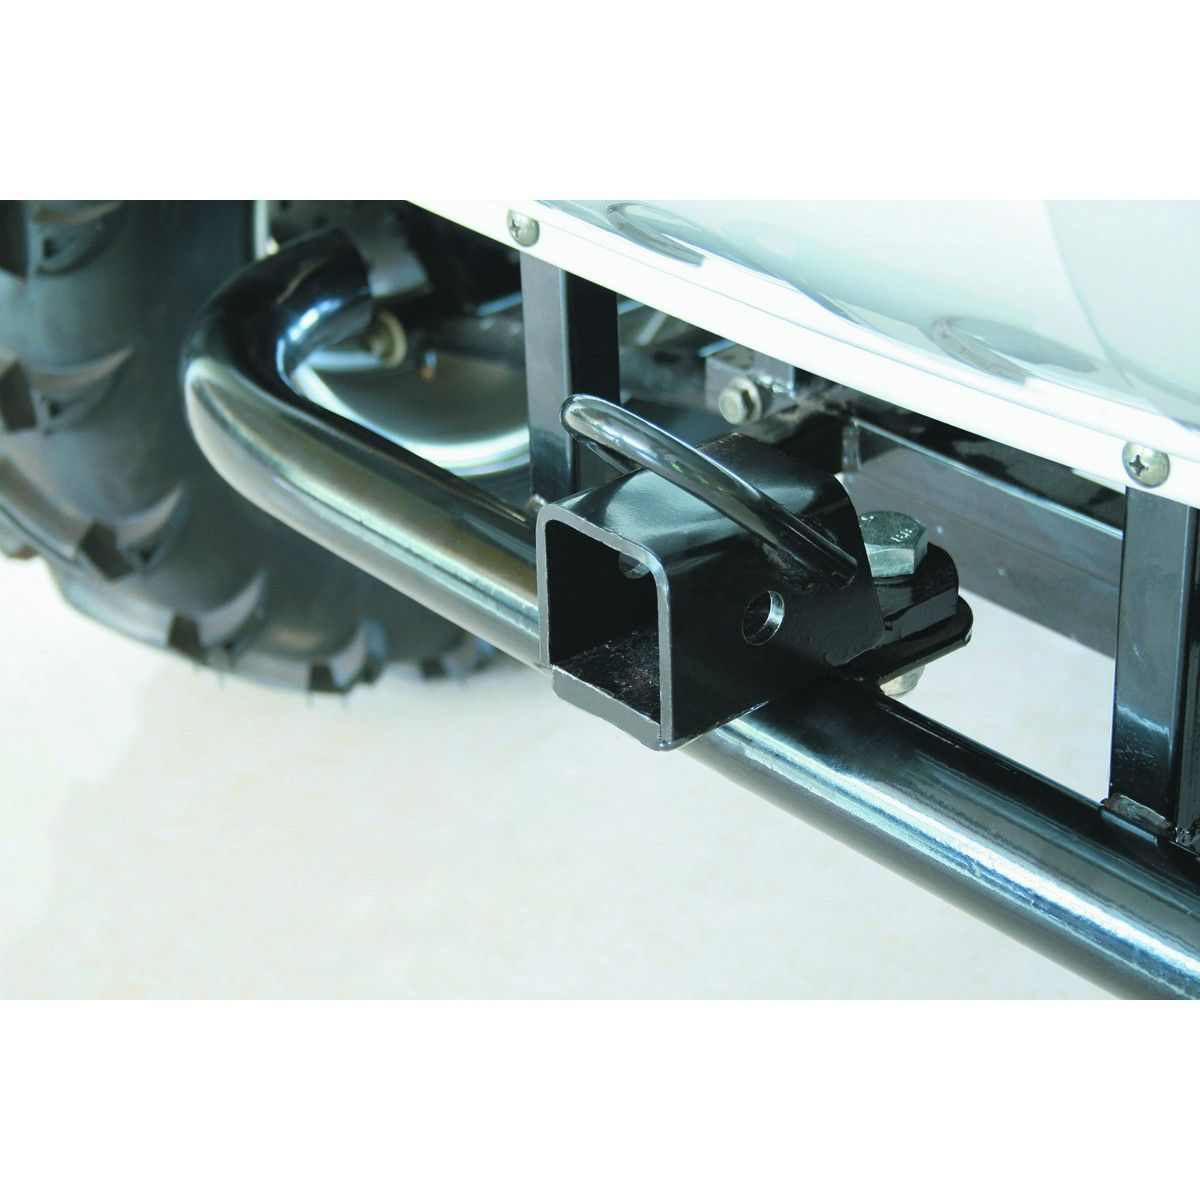 ATV Hitch Adapter Trailer accessories, Atv accessories, Atv